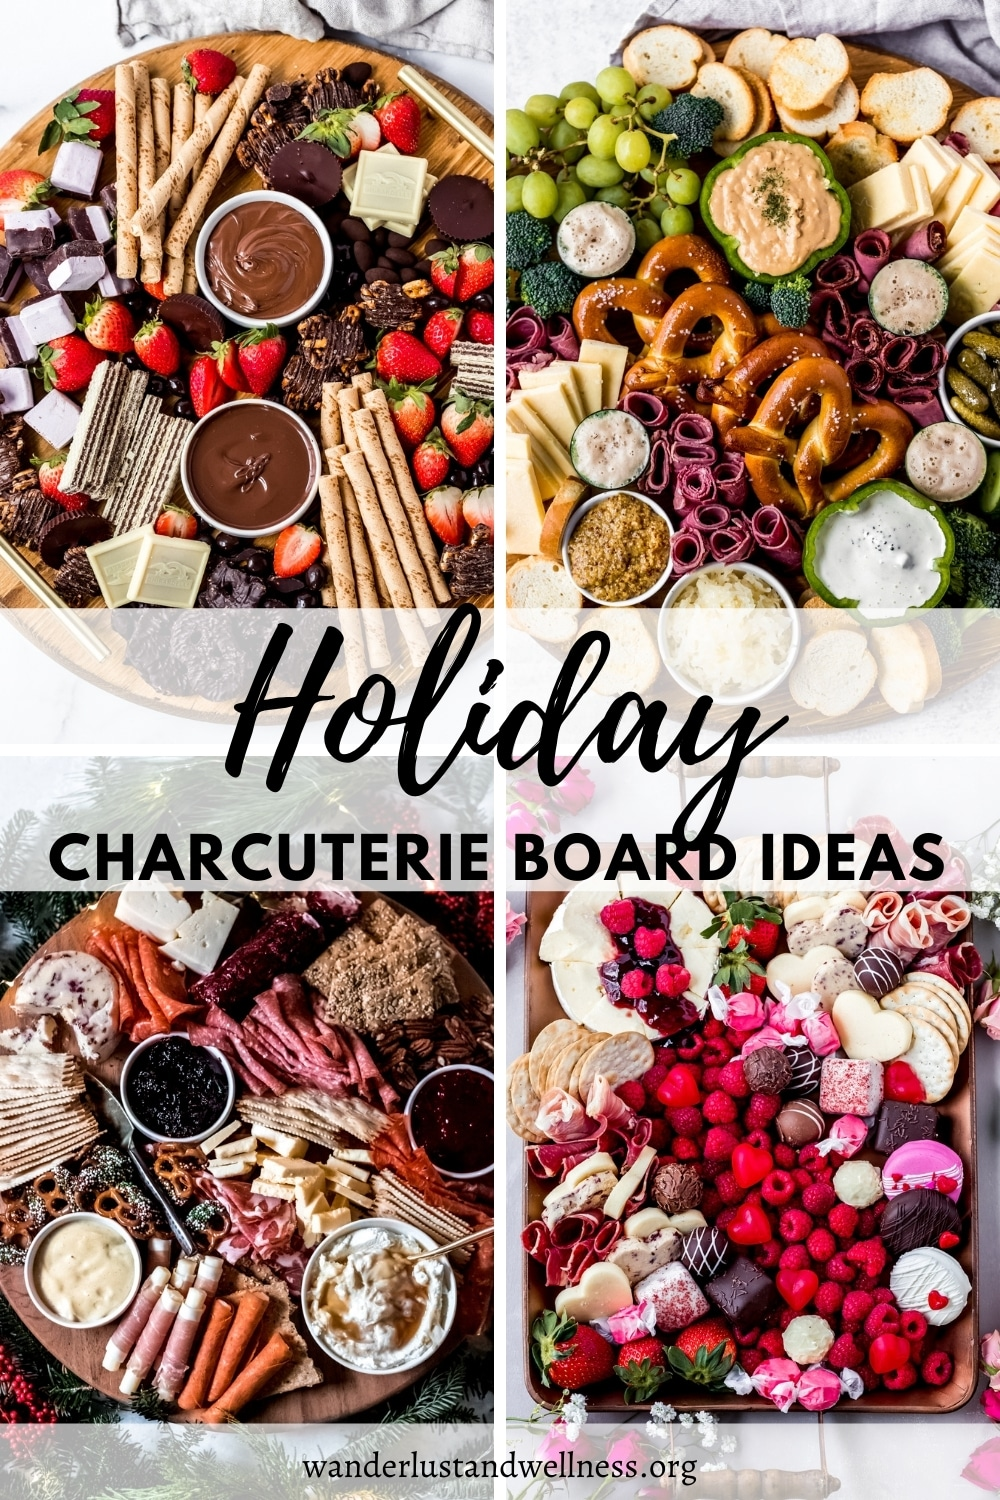 a collage image of holiday charcuterie board ideas